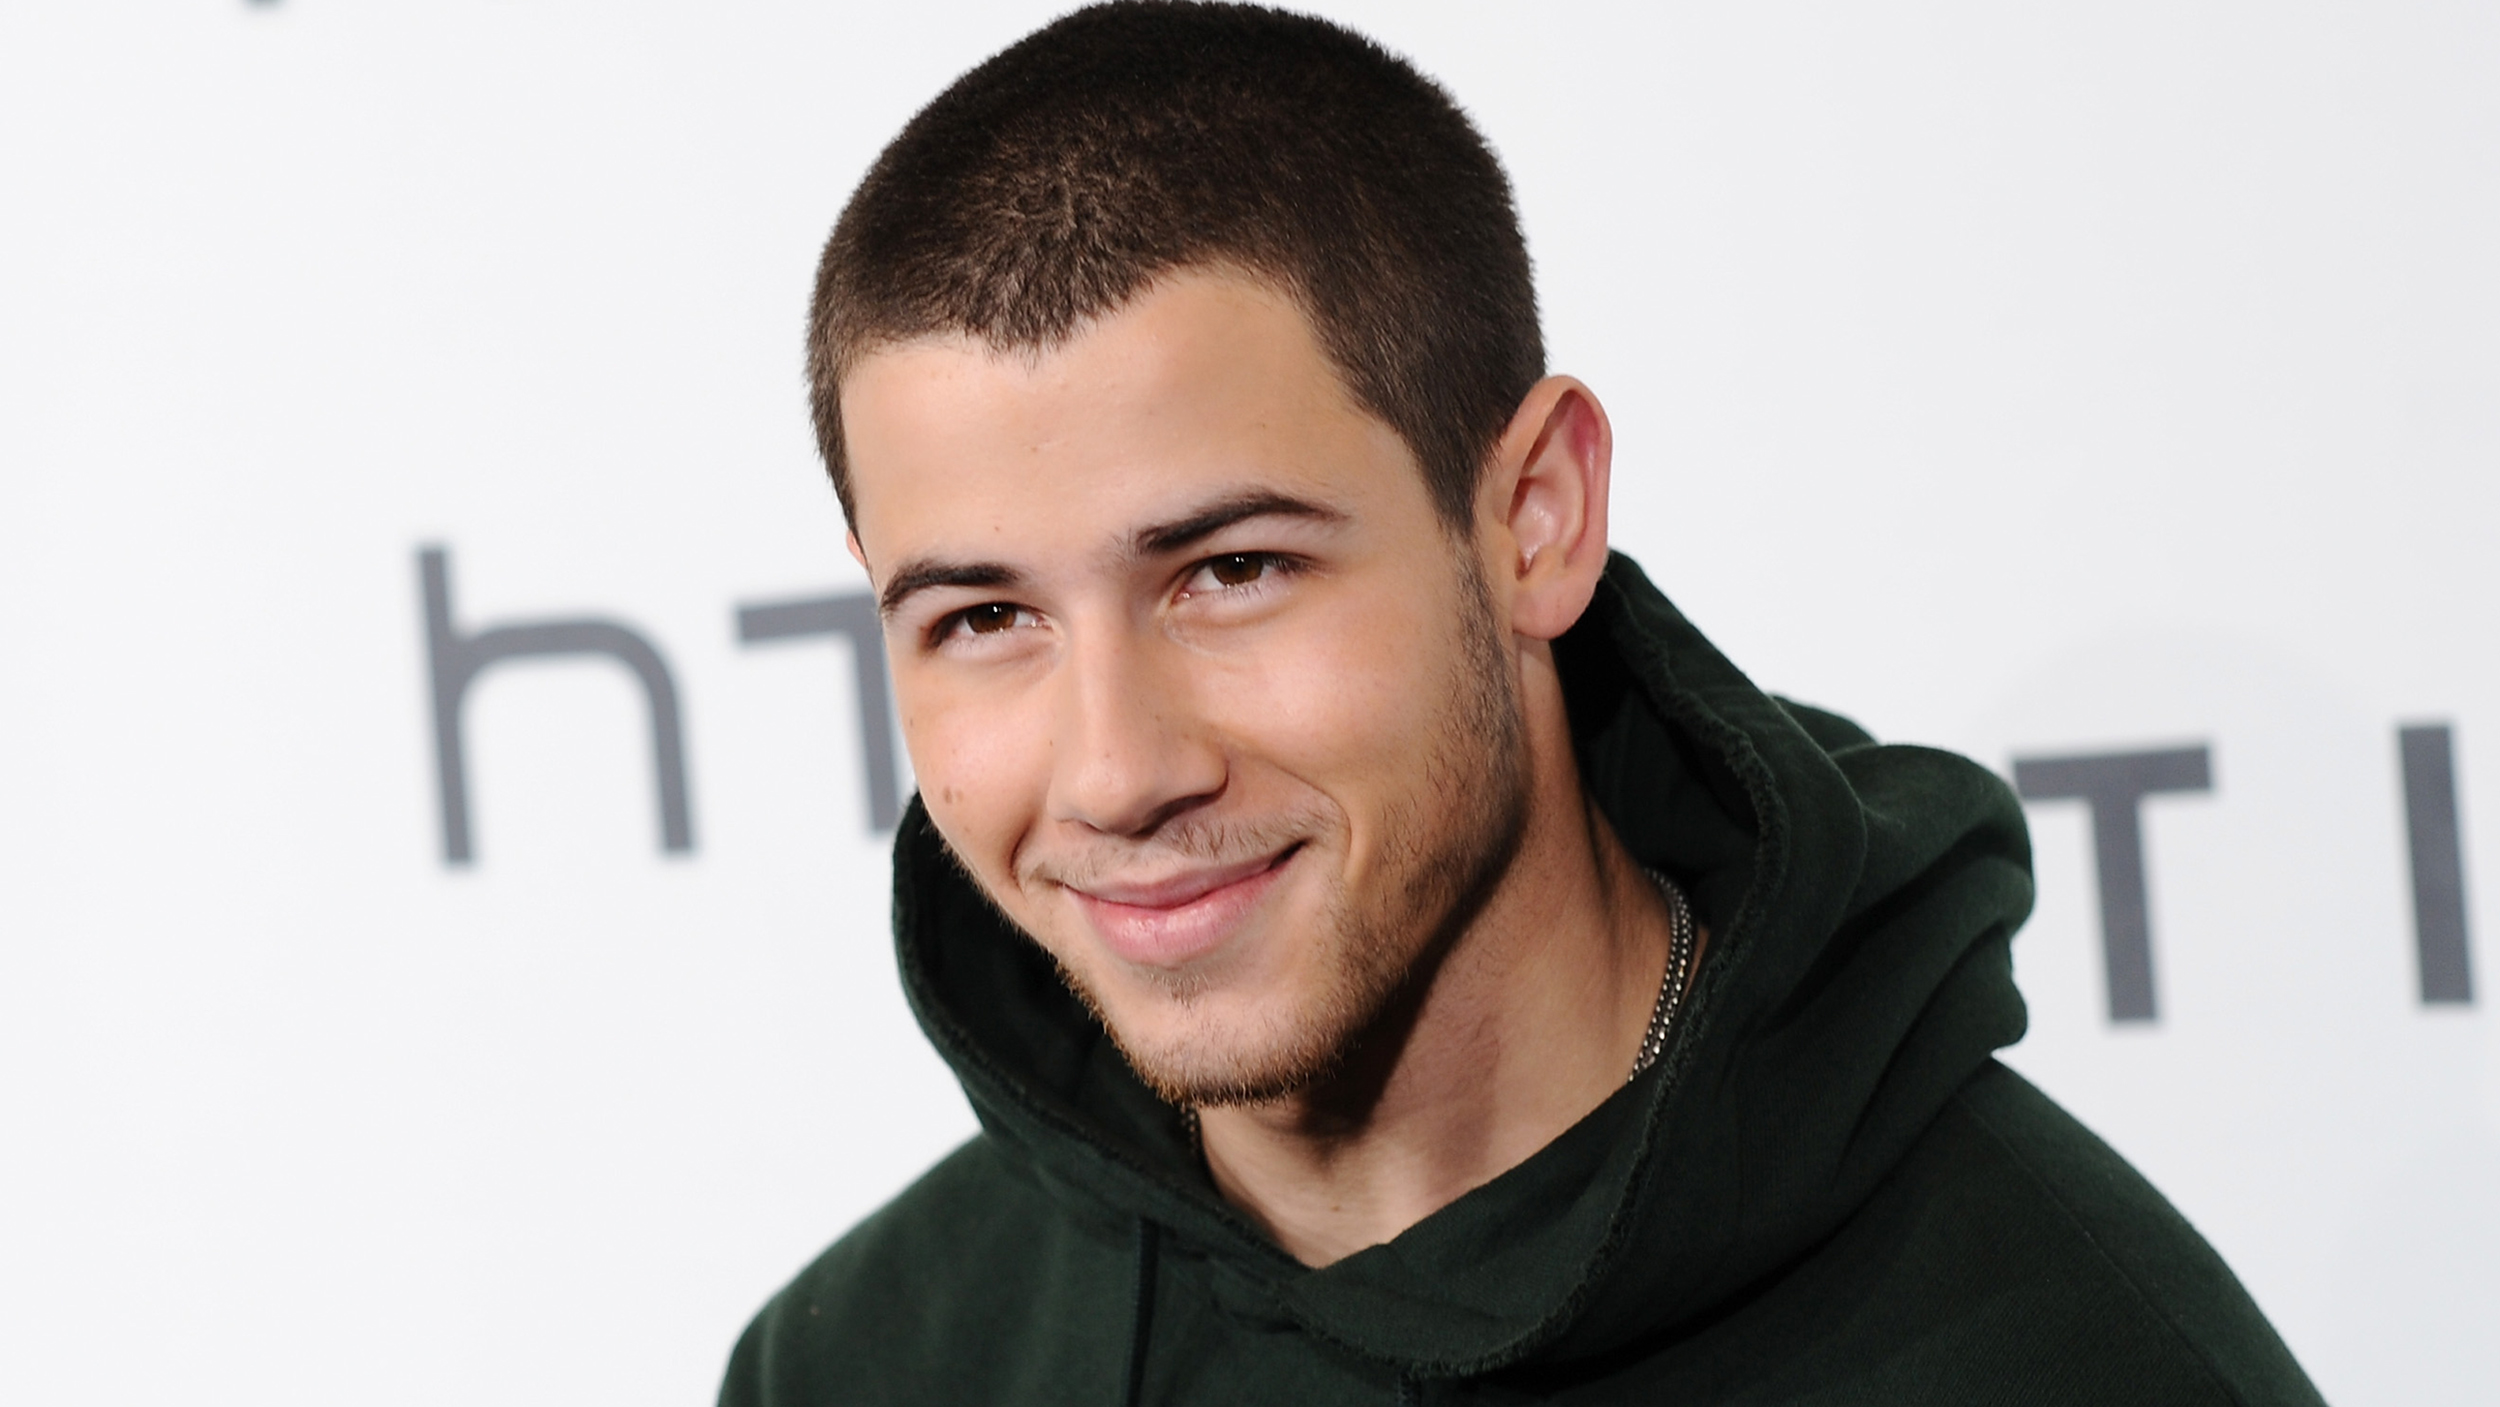 NEW YORK, NY - OCTOBER 20:  Nick Jonas attends TIDAL X: 1020 at Barclays Center on October 20, 2015 in the Brooklyn borough of New York City.  (Photo by Ilya S. Savenok/Getty Images)